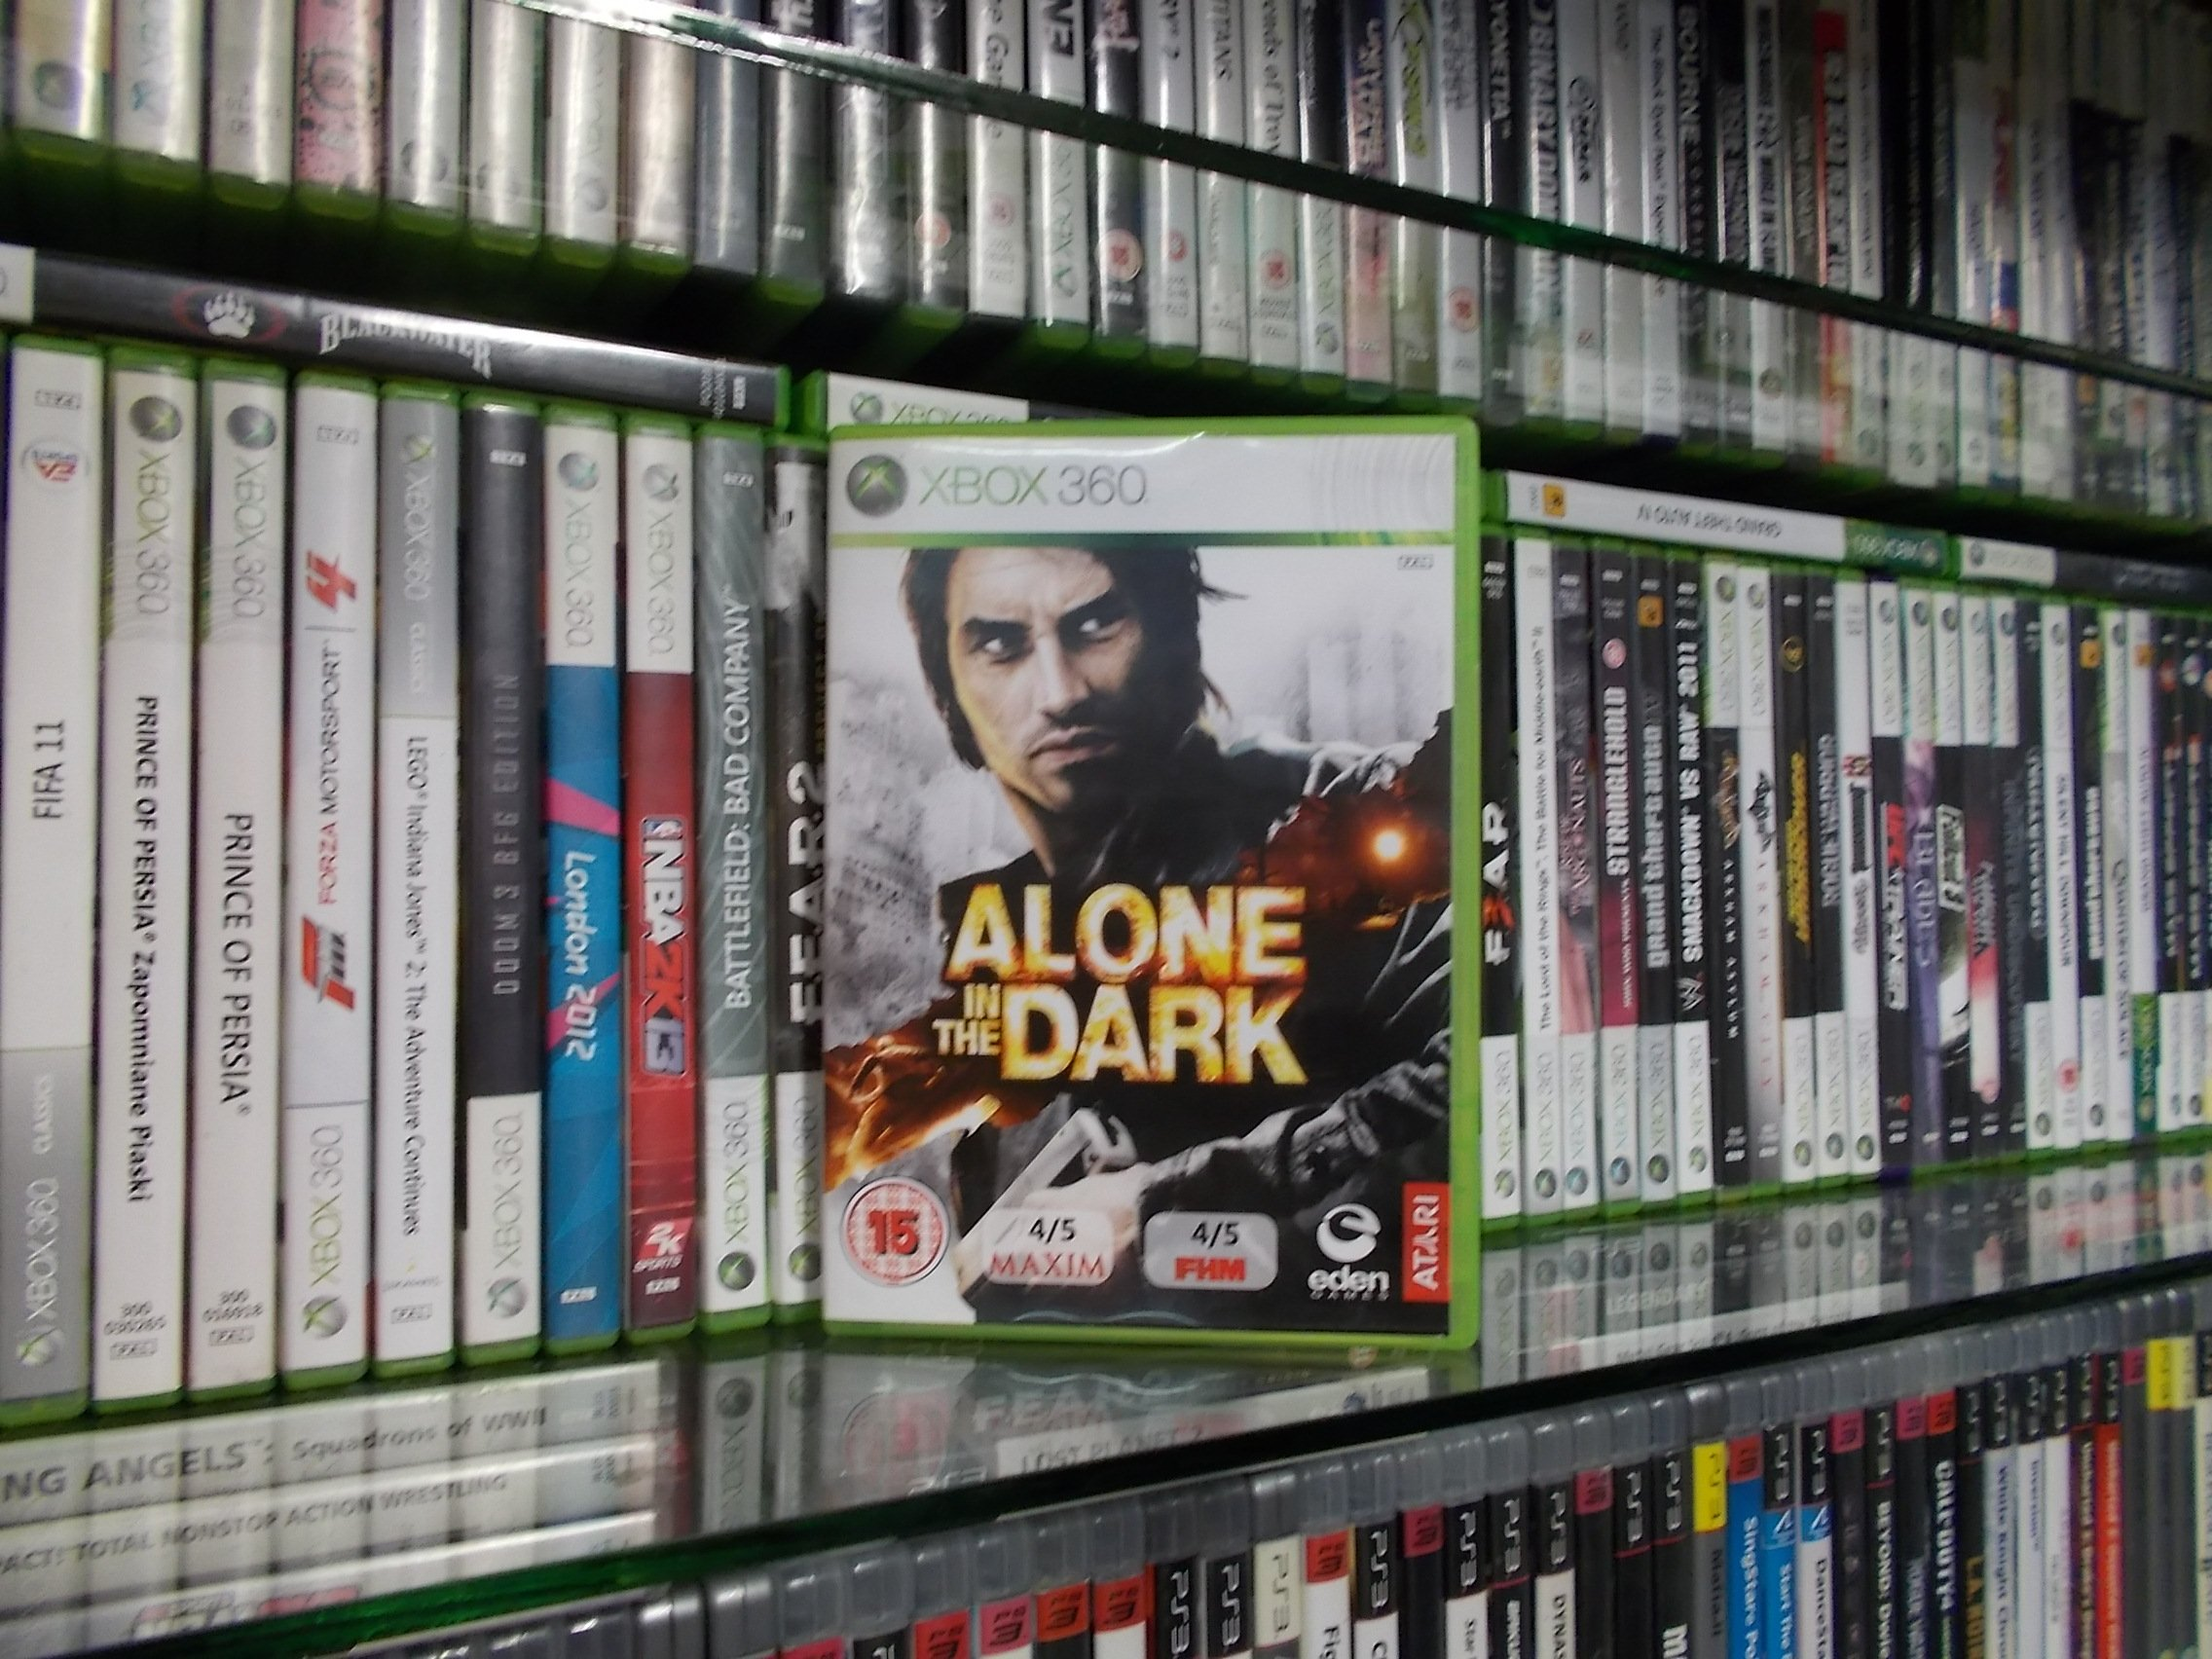 Alone in the Dark - GRA XBOX 360 Sklep